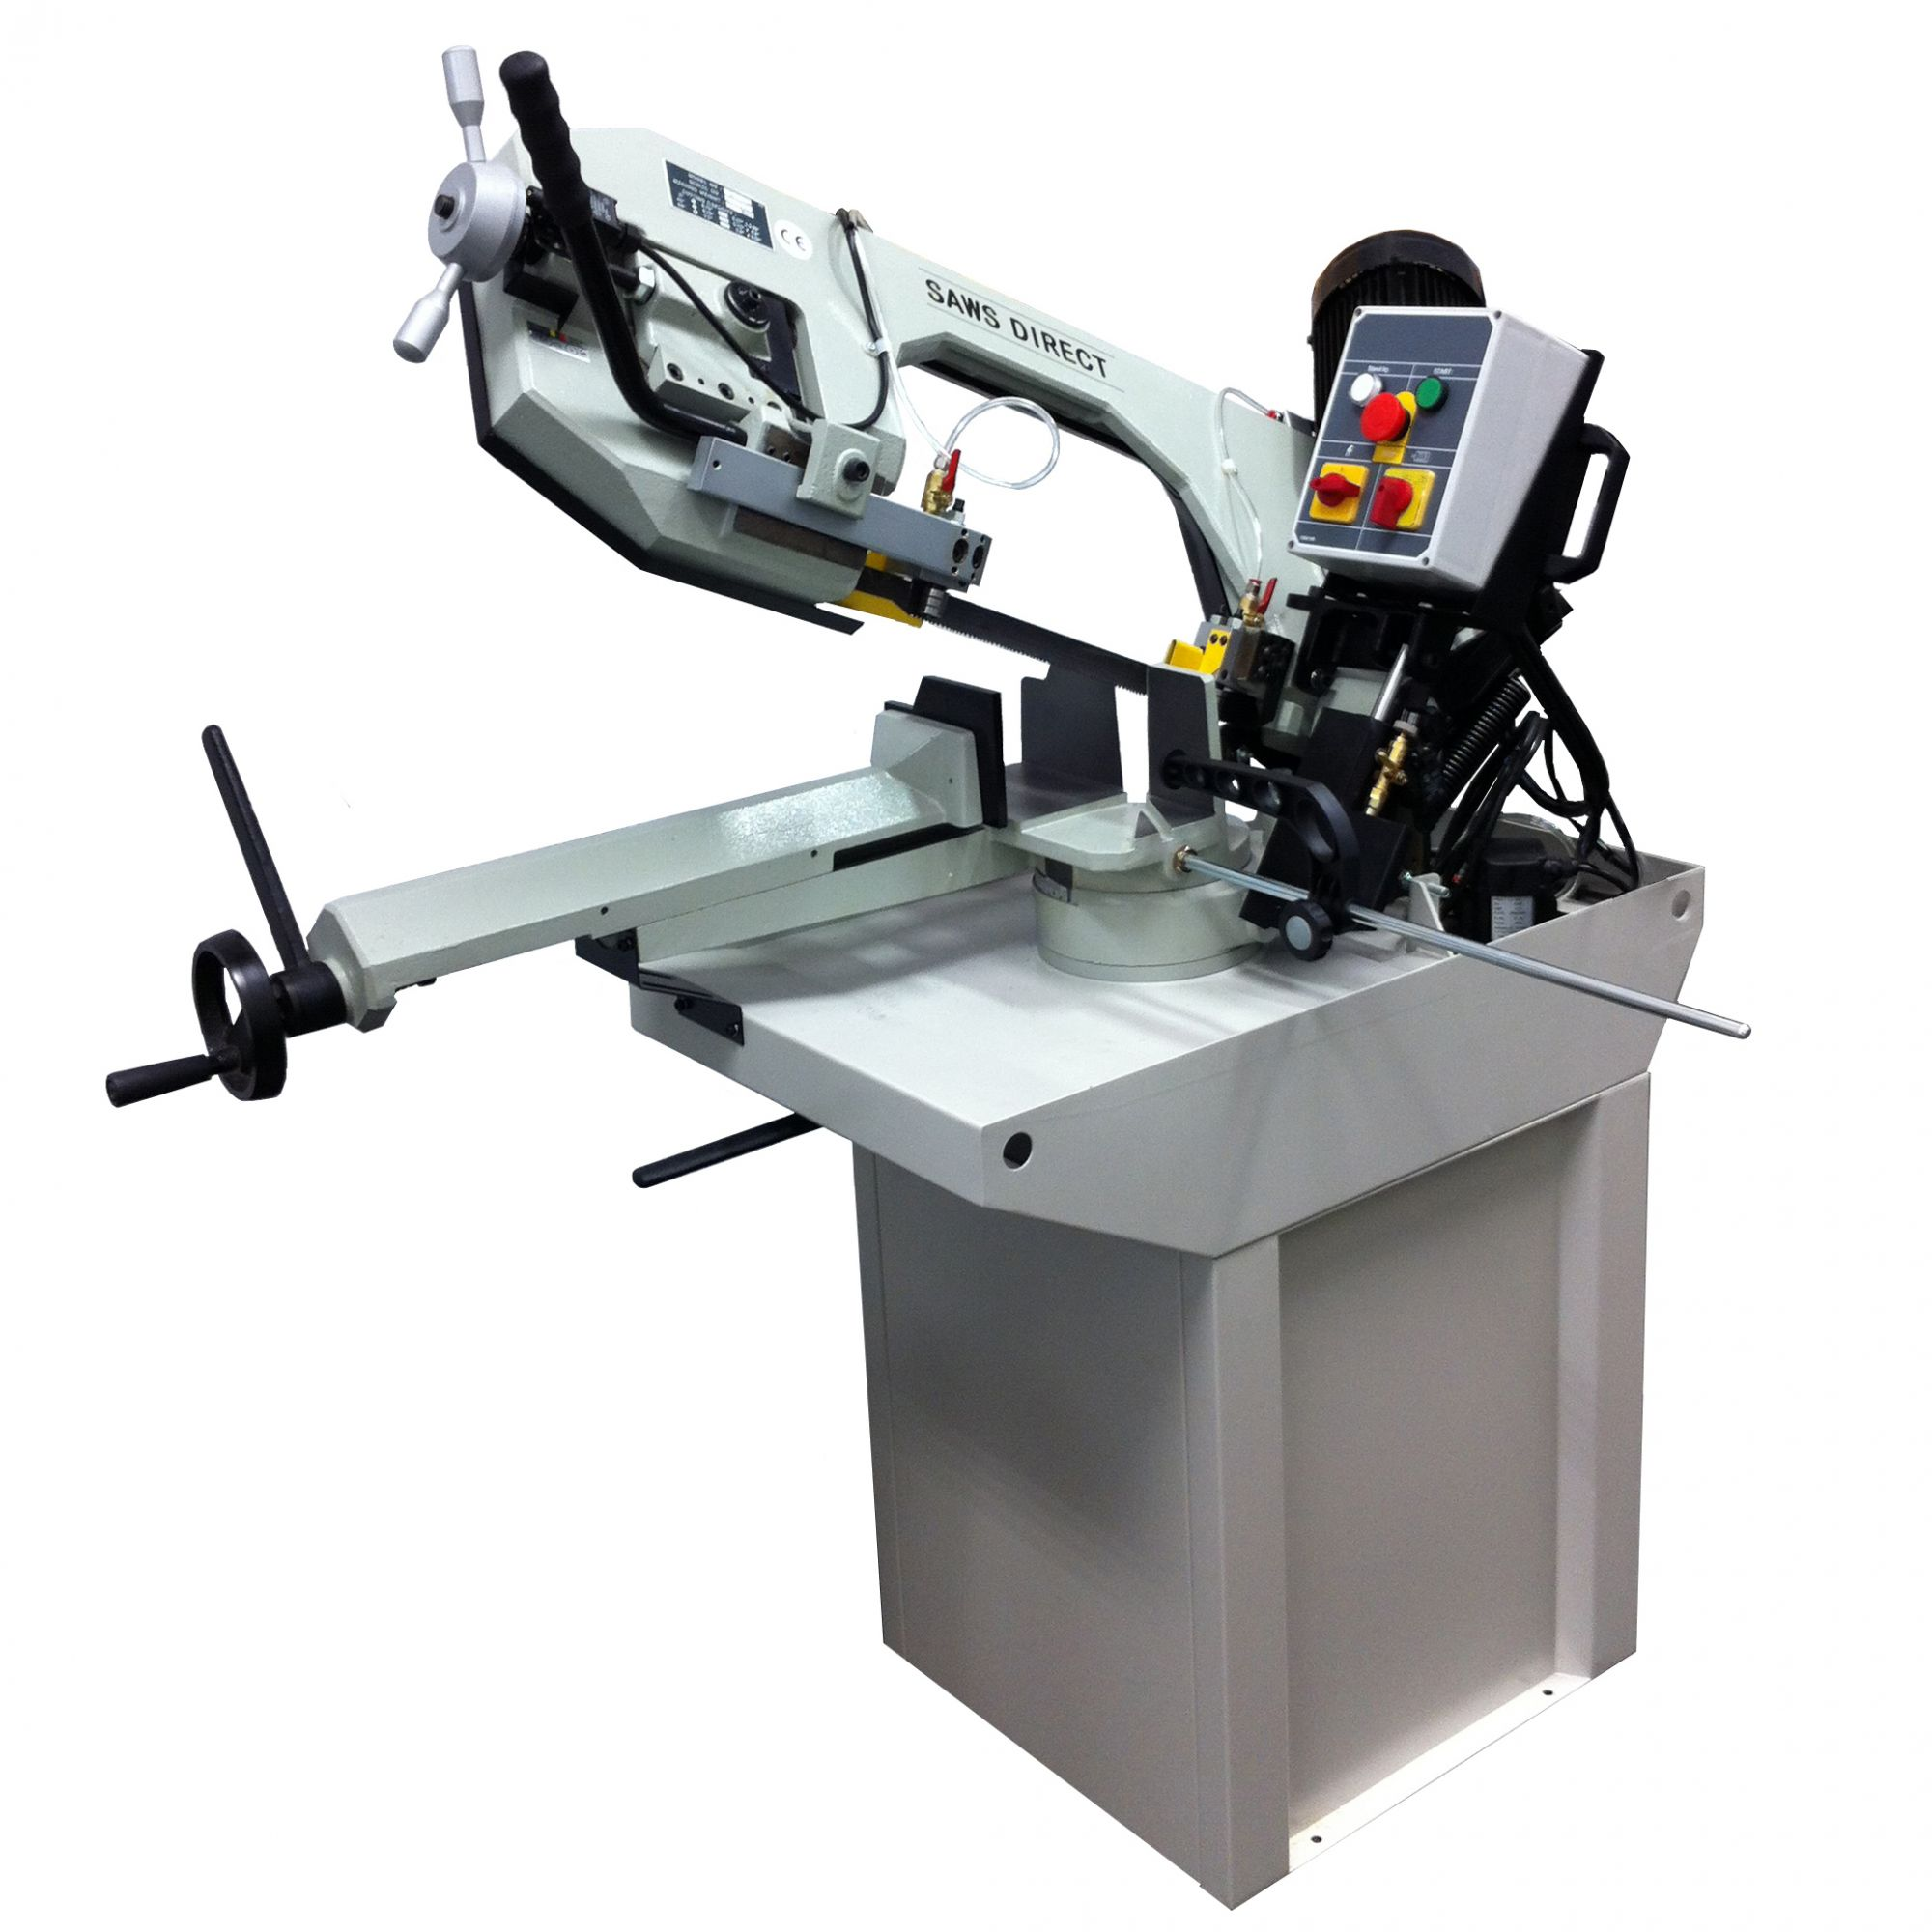 SD-270S Dual Mode Mitre Bandsaw